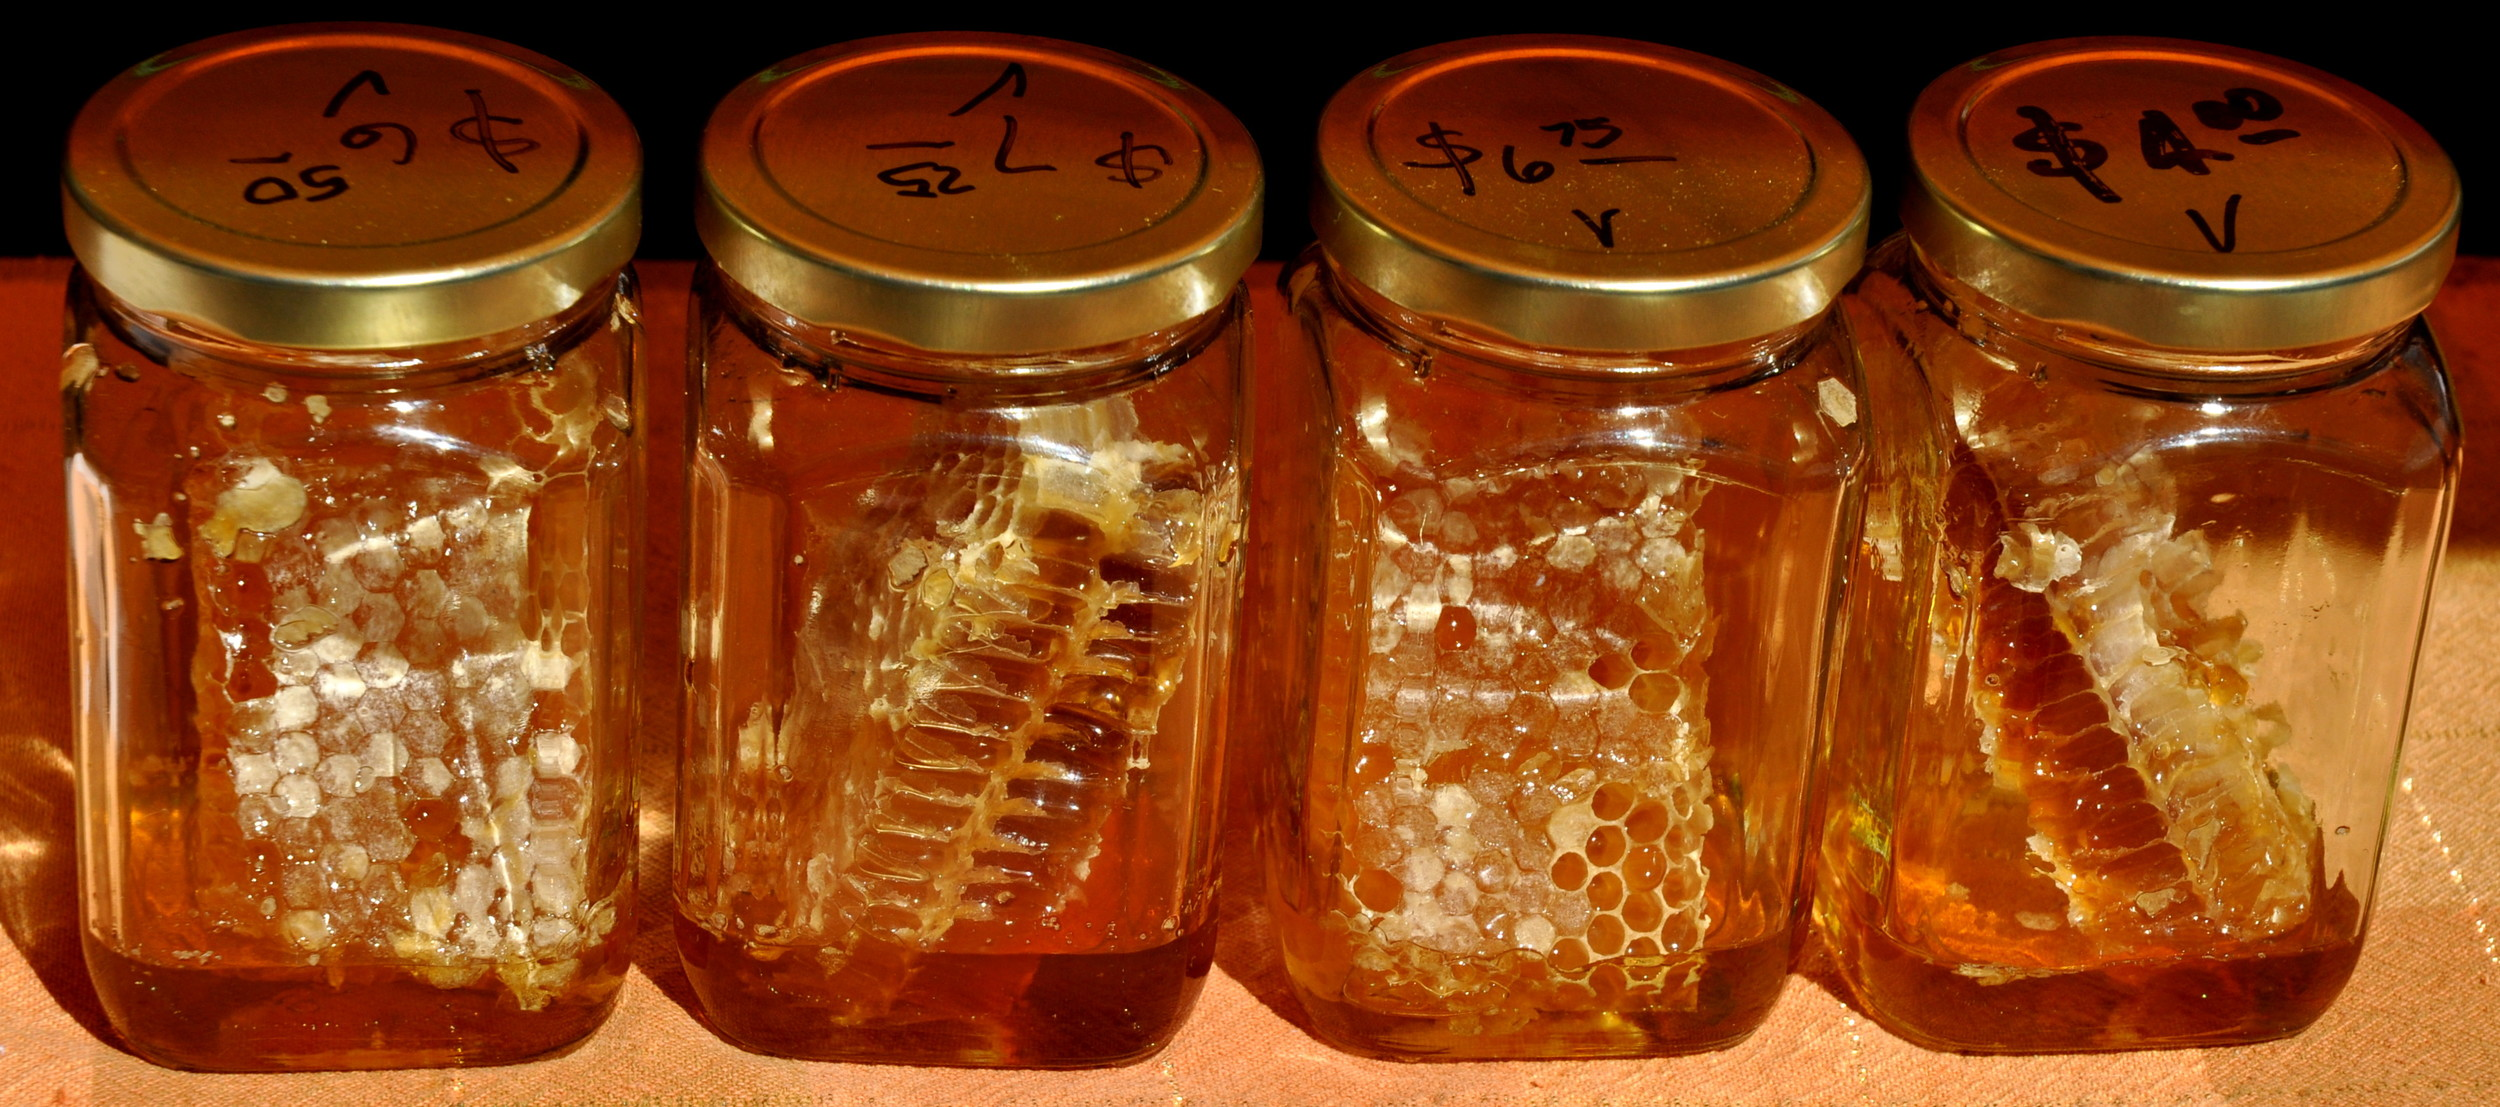 Honeycomb from Golden Harvest Bee Ranch. Photo copyright 2013 by Zachary D. Lyons.